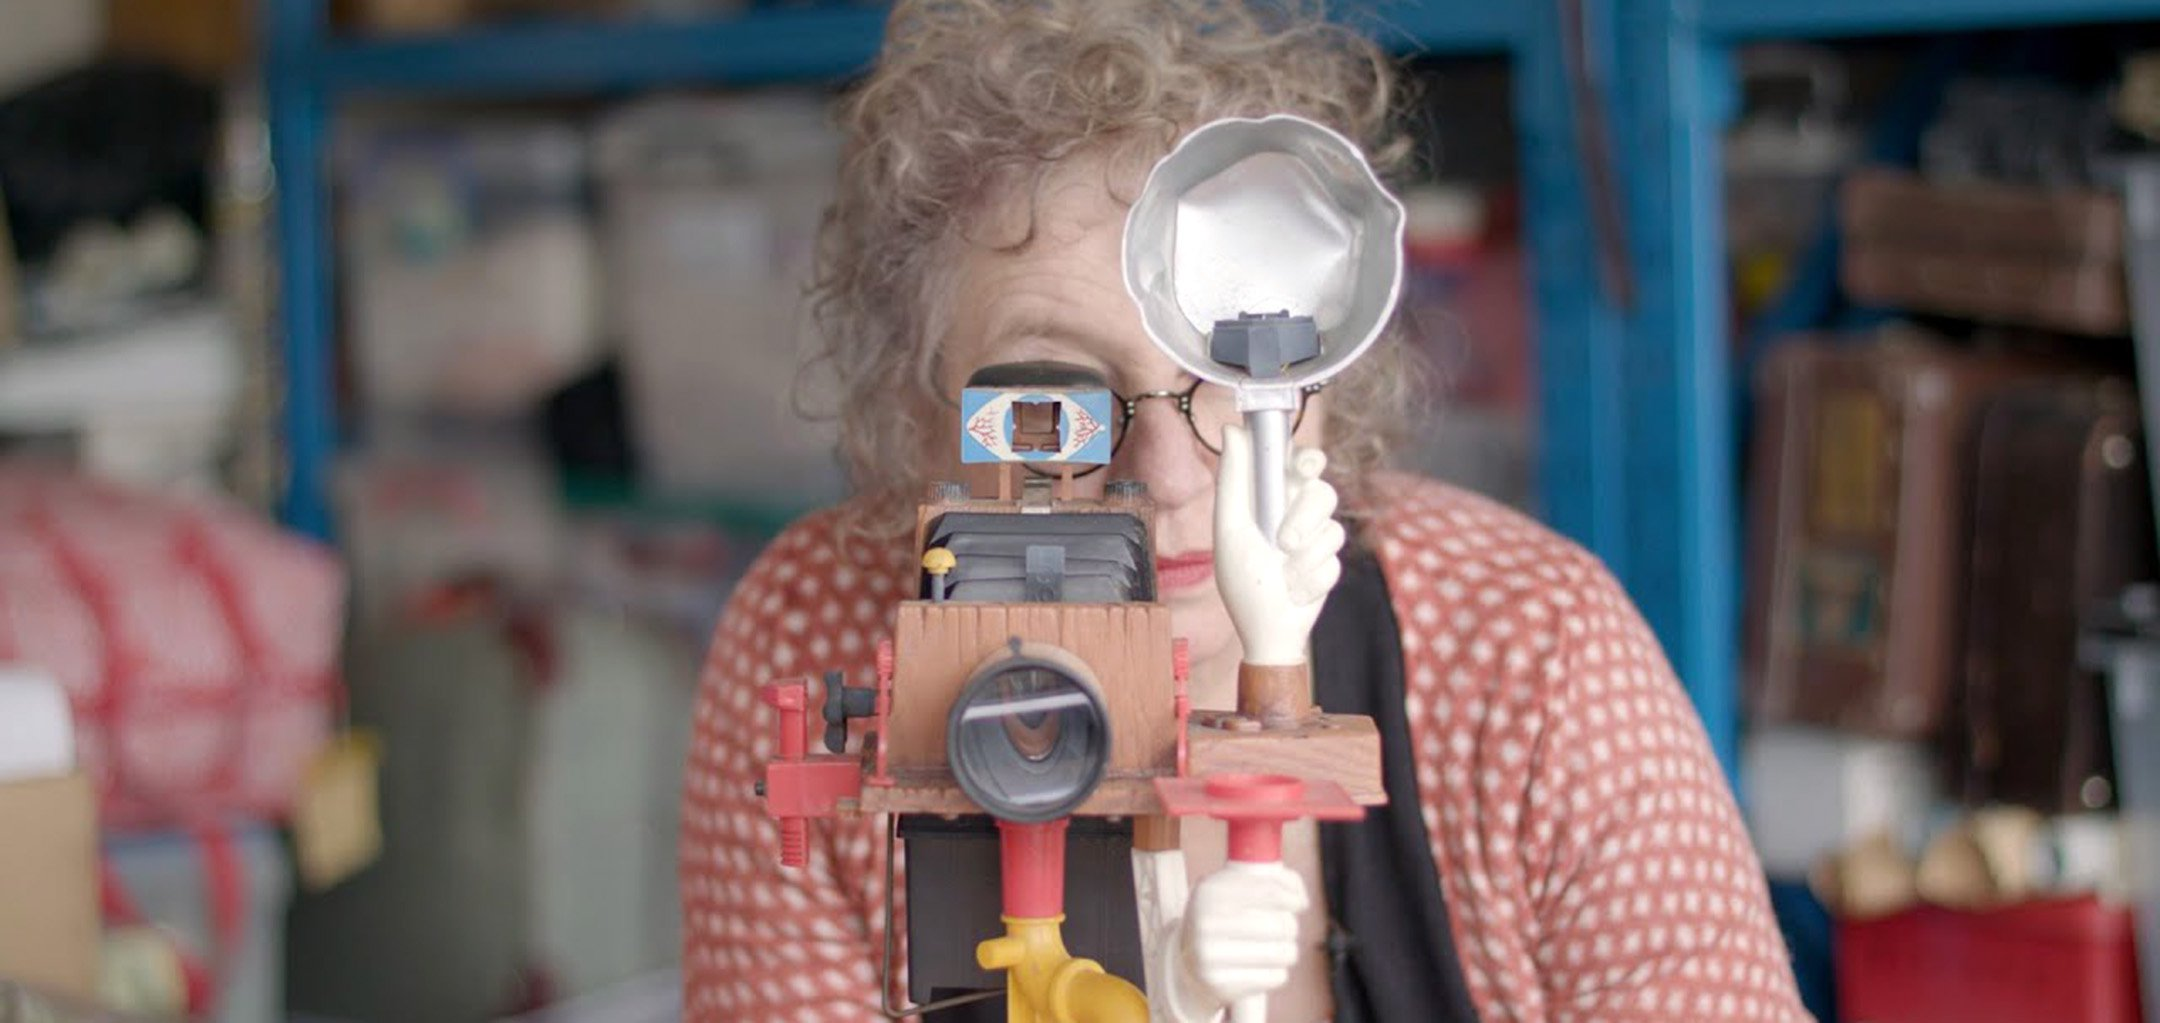 A woman (Edie Kurzer) wearing a polkadot dress looks down the lens of a camera made from disparate, colourful parts